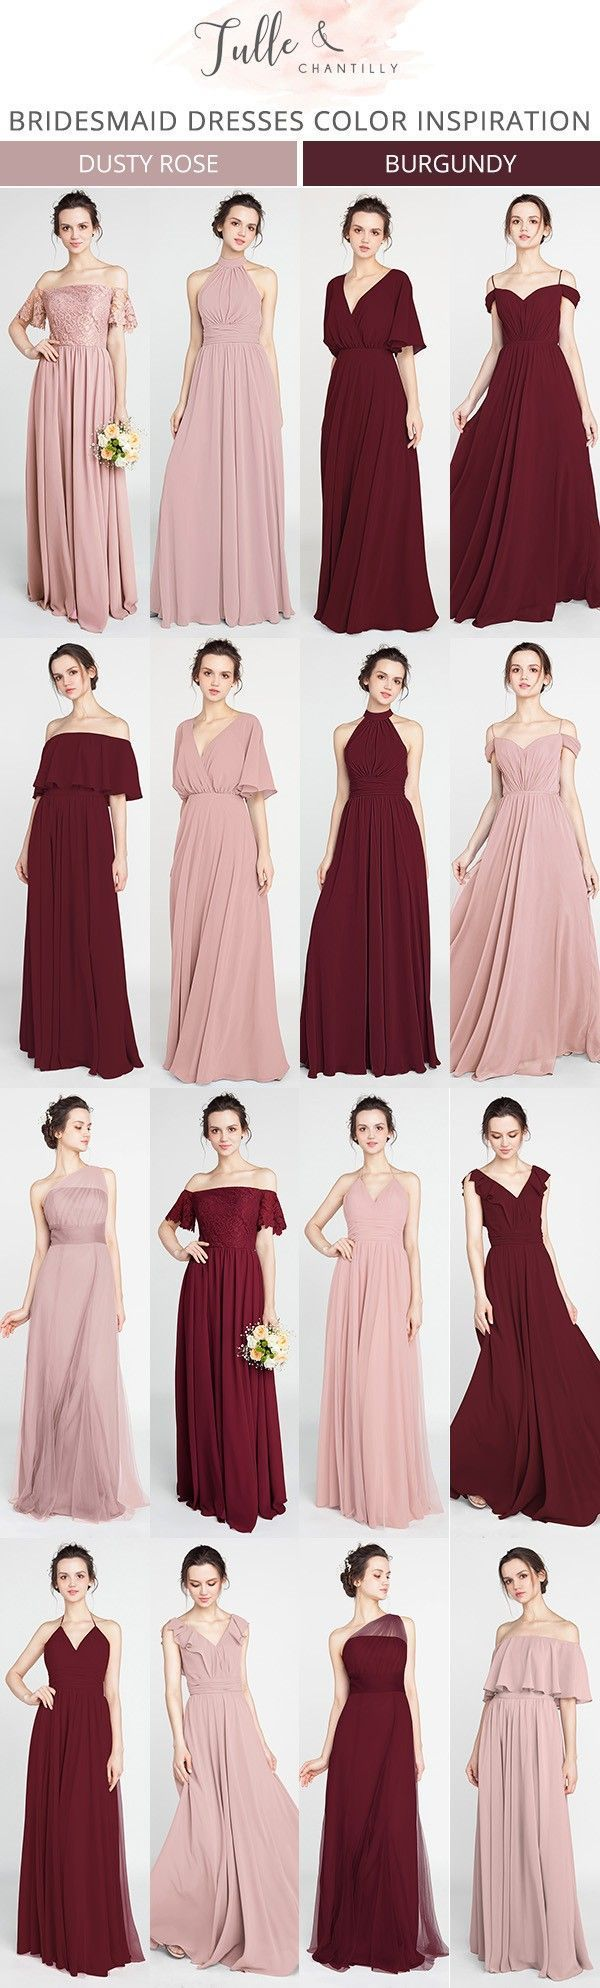 Dusty Rose And Burgundy Bridesmaid Dresses For 2018 Bridesmaiddresses 2018wedding Burgundy Bridesmaid Dresses Rose Bridesmaid Dresses Fall Bridesmaid Dresses